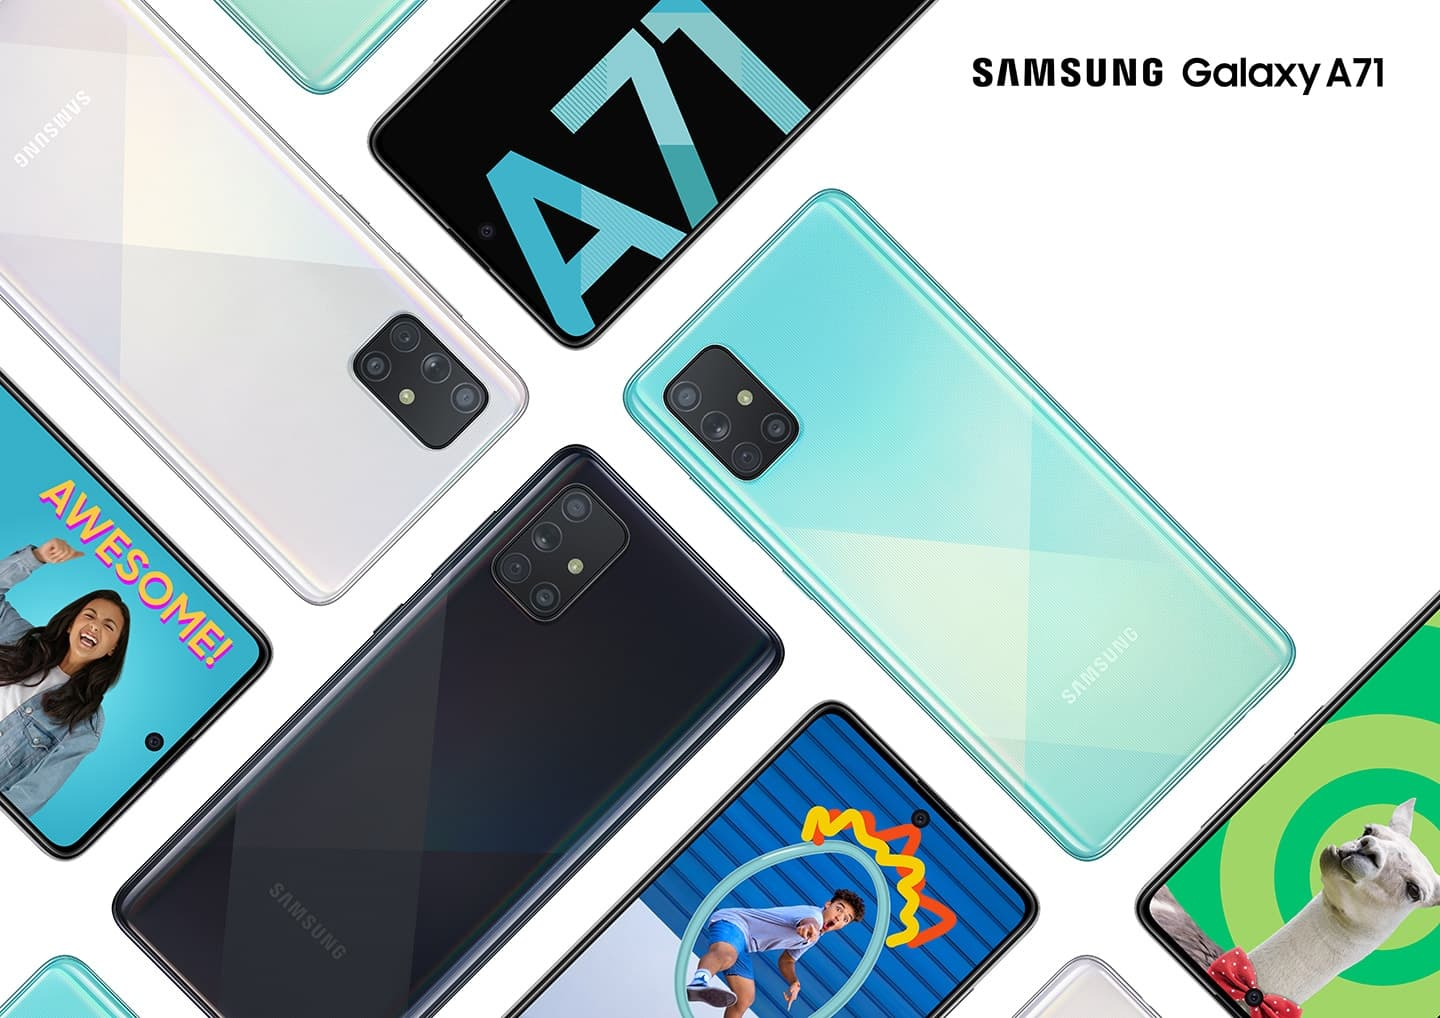 Samsung Galaxy A71 in four different color finishes